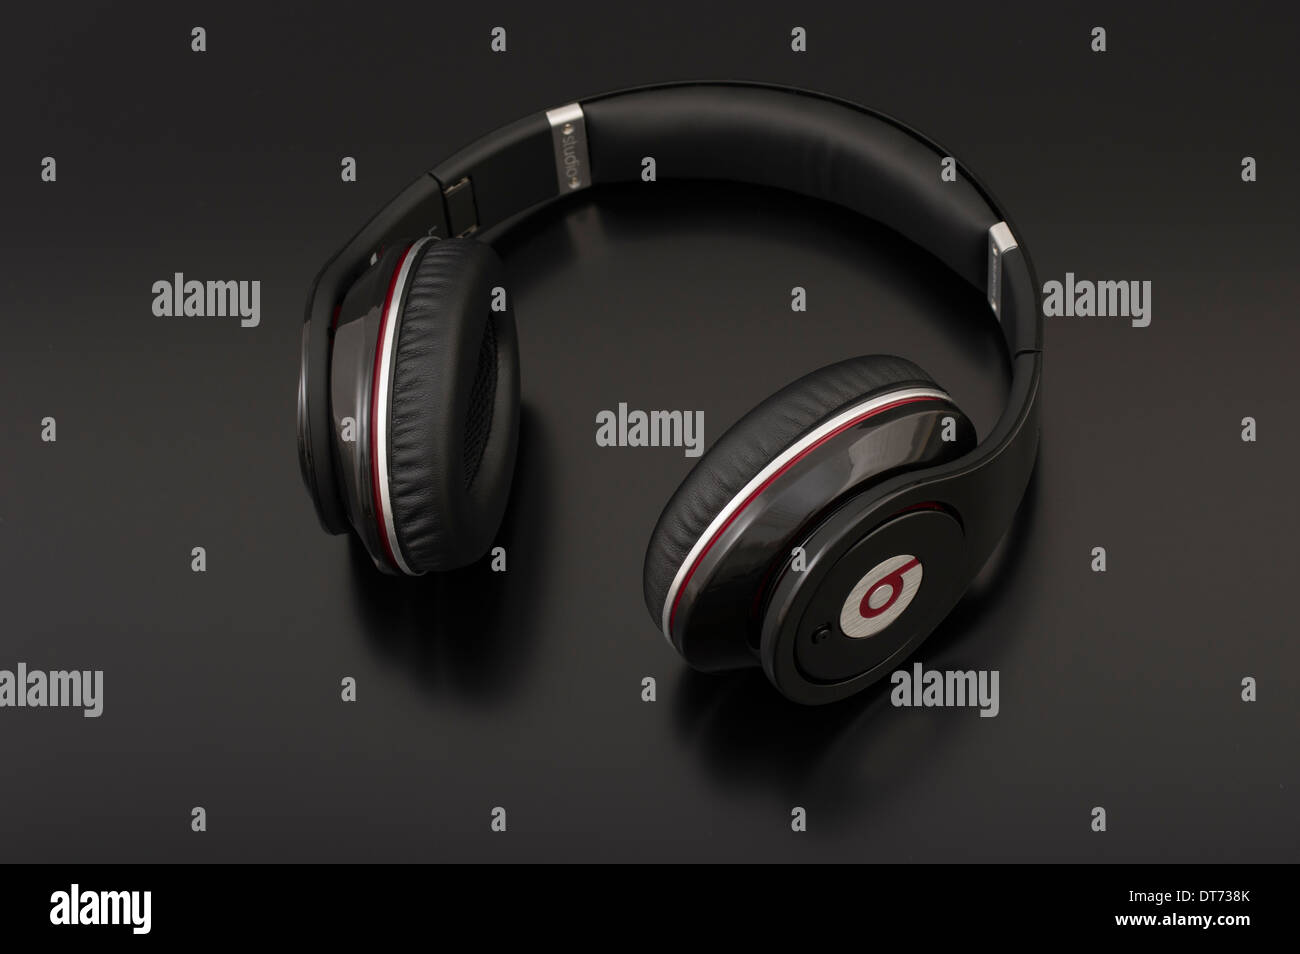 Beats by Dr. Dre iconic headphones 1st generation Studio headphones - Stock Image